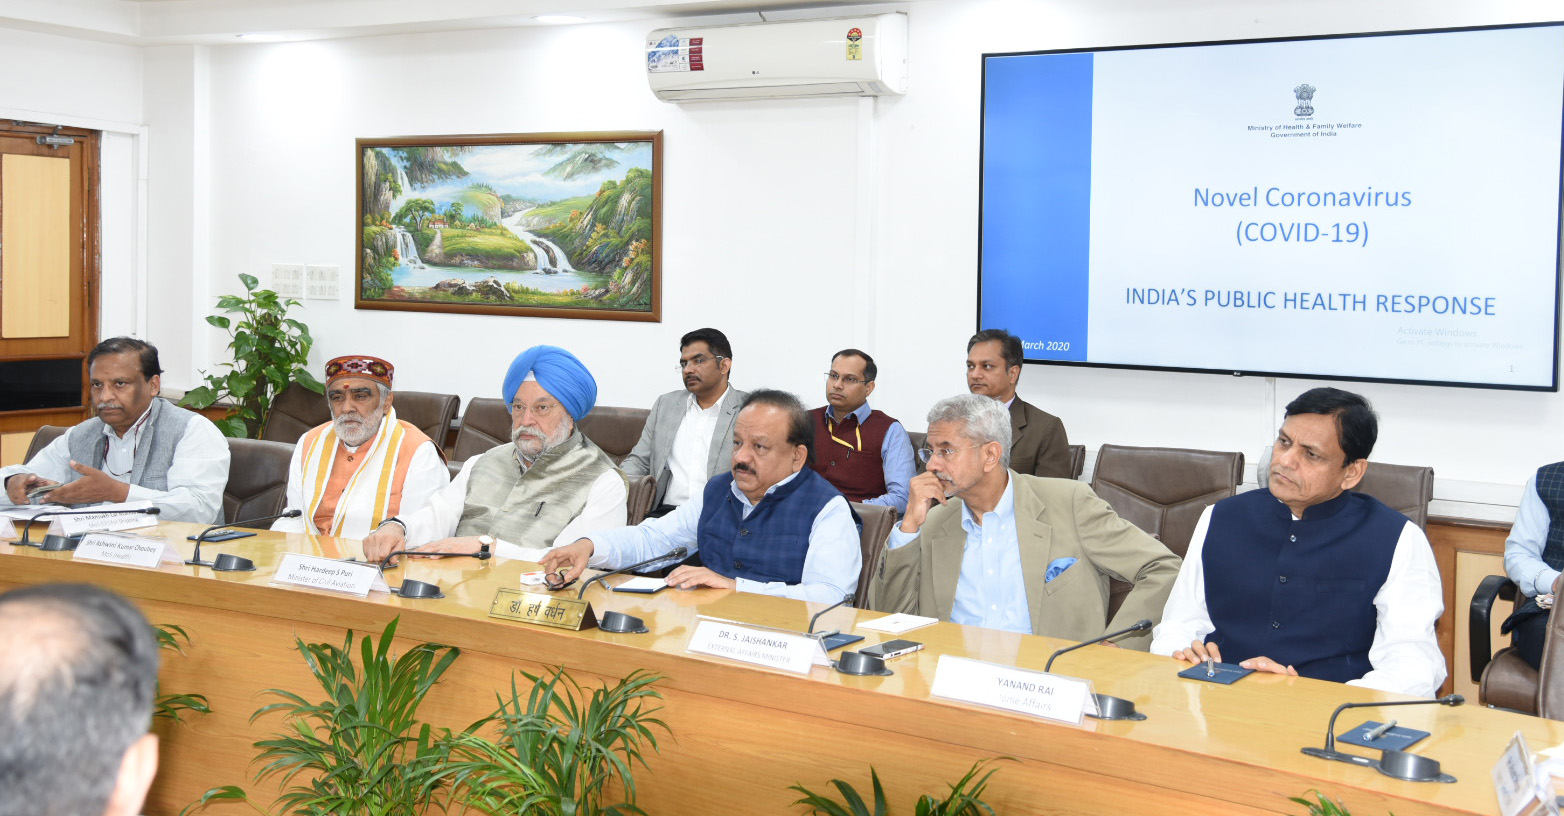 The Union Minister for Health & Family Welfare, Science & Technology and Earth Sciences, Dr. Harsh Vardhan chairing a high level meeting of the Group of Ministers (GoM) to discuss emerging International & National situation of Novel Coronavirus Disease (COVID-19) and to take appropriate measures, in New Delhi on March 16, 2020.